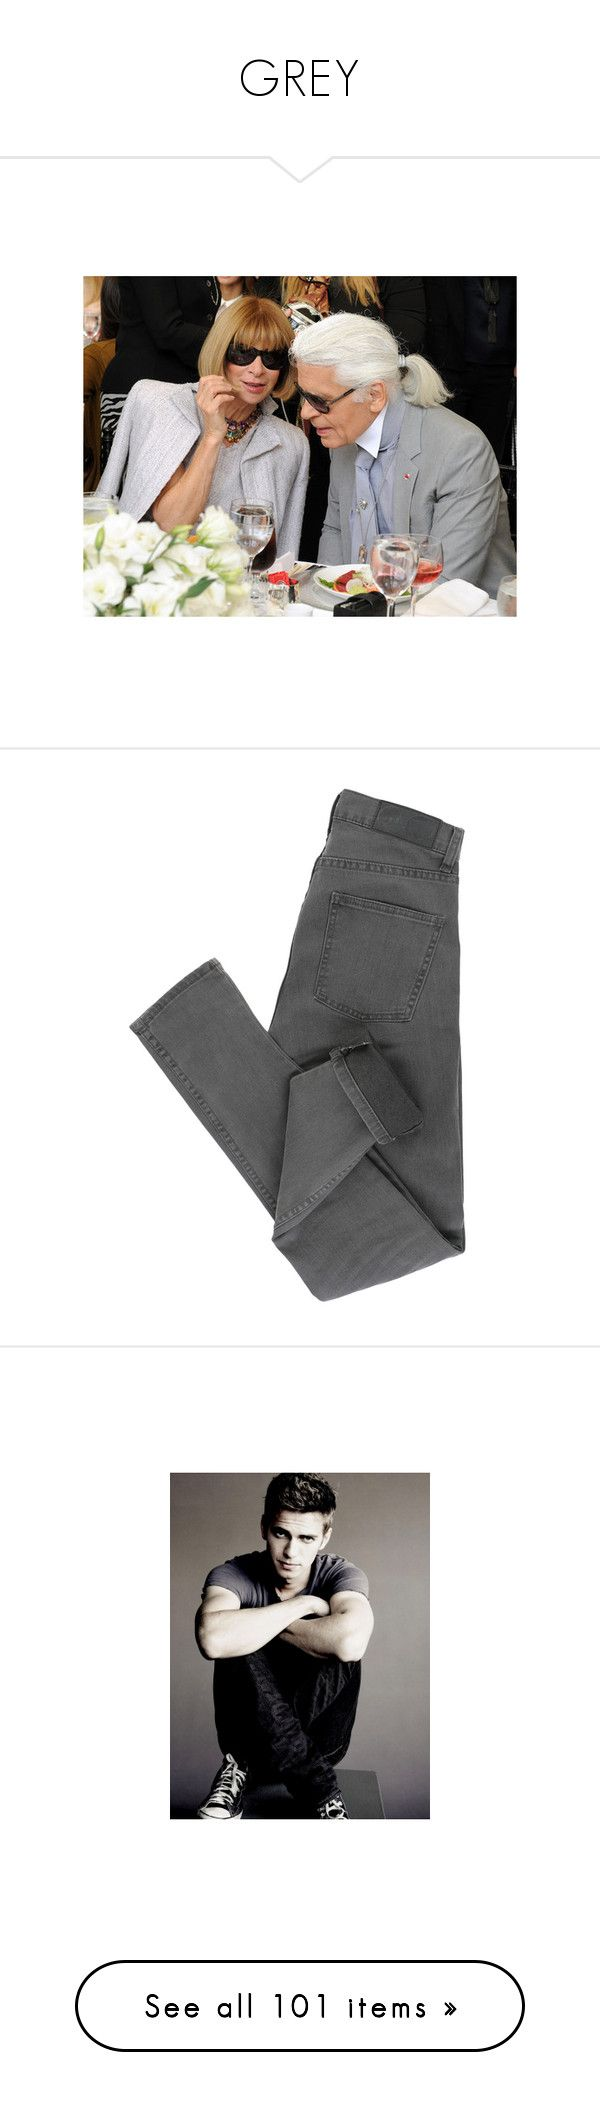 """""""GREY"""" by gucci-makha ❤ liked on Polyvore featuring images, pictures, jeans, pants, bottoms, trousers, cheap monday, cheap monday jeans, gray jeans and grey jeans"""